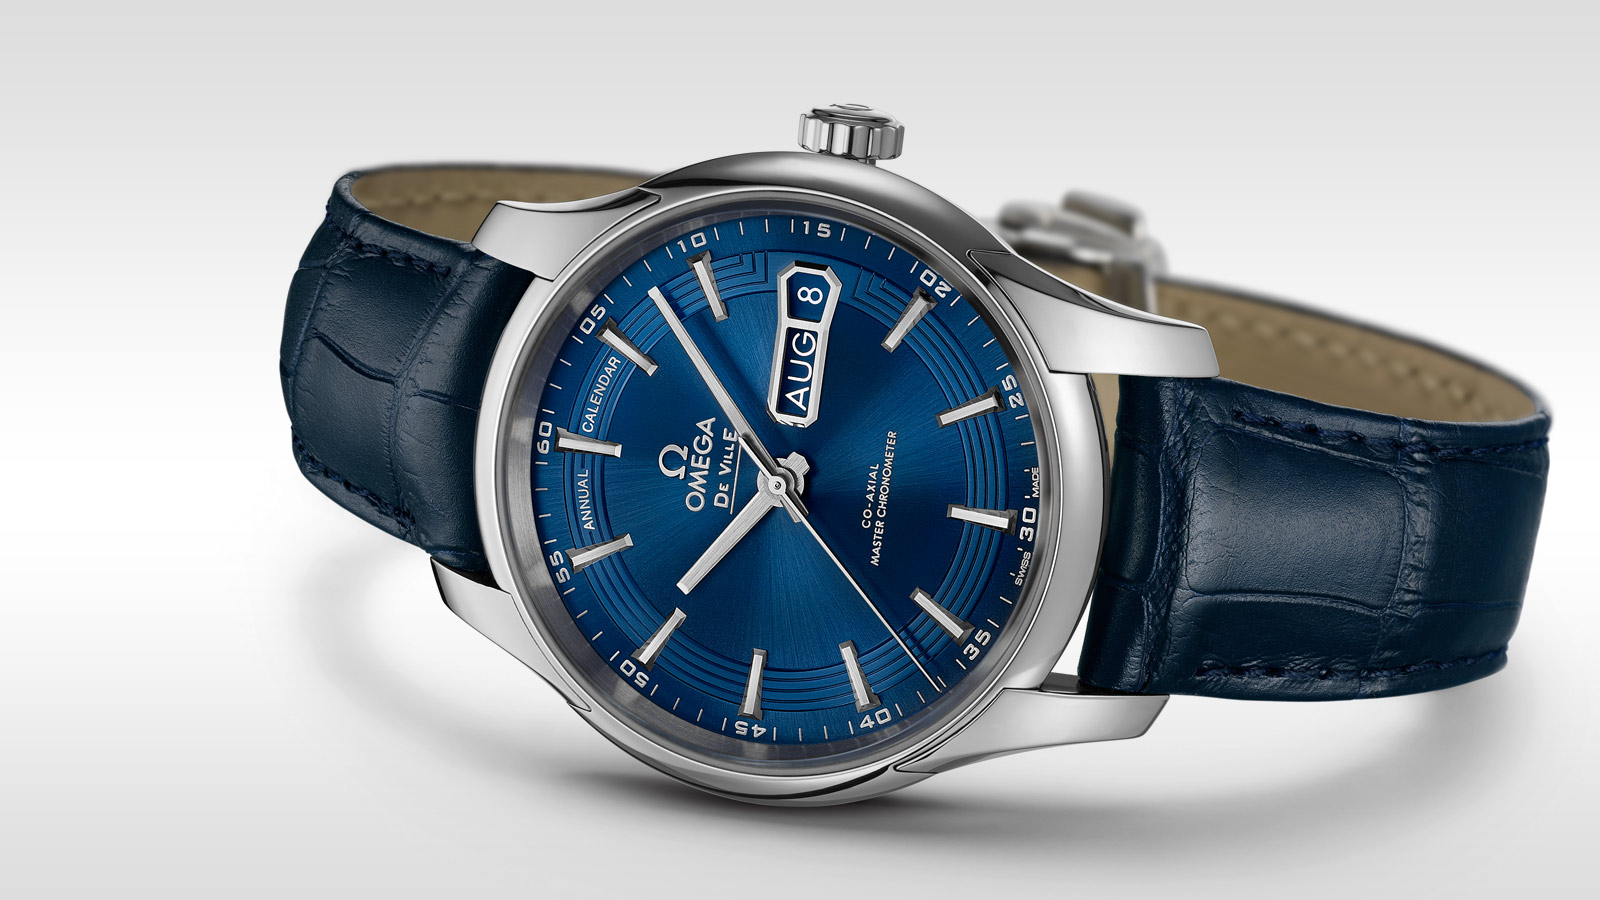 De Ville アワービジョン Hour Vision Omega Co‑Axial Master Chronometer Annual Calendar 41mm - 433.33.41.22.03.001 - ビュー 1